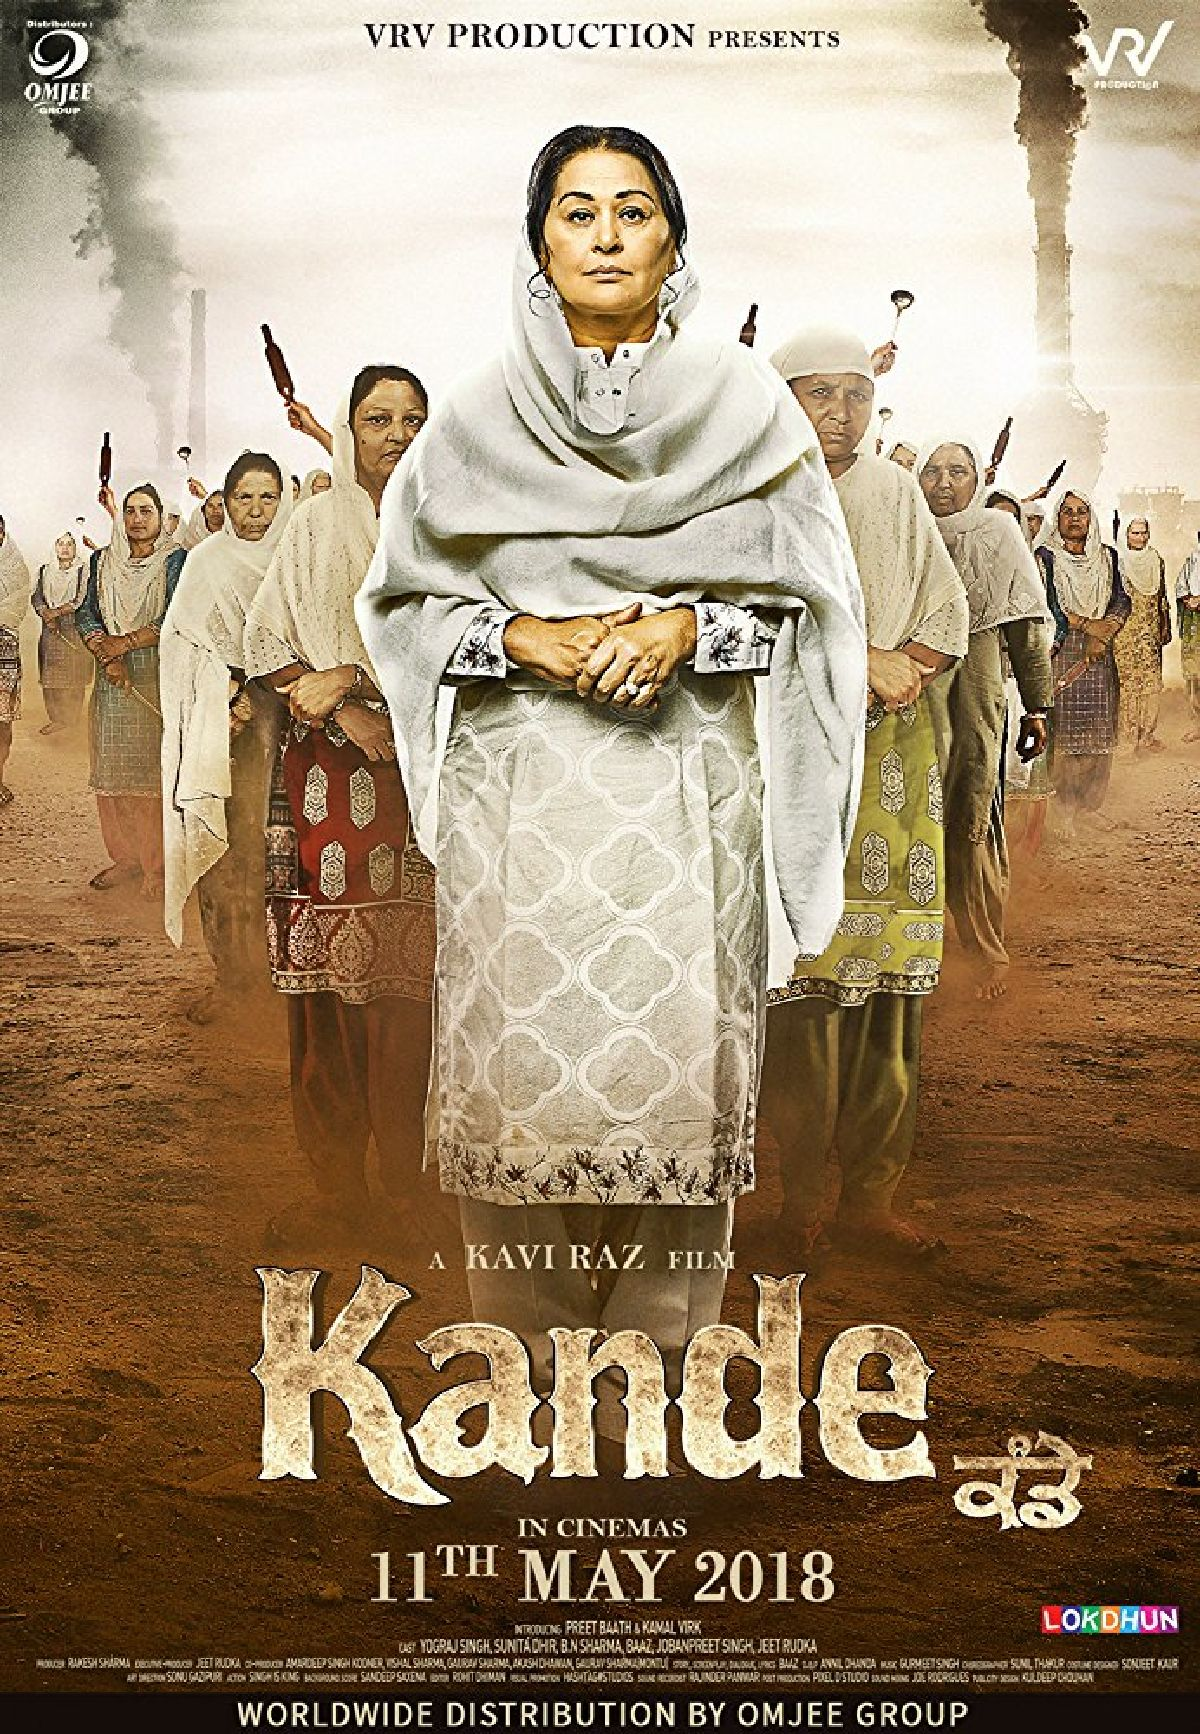 'Kande' movie poster